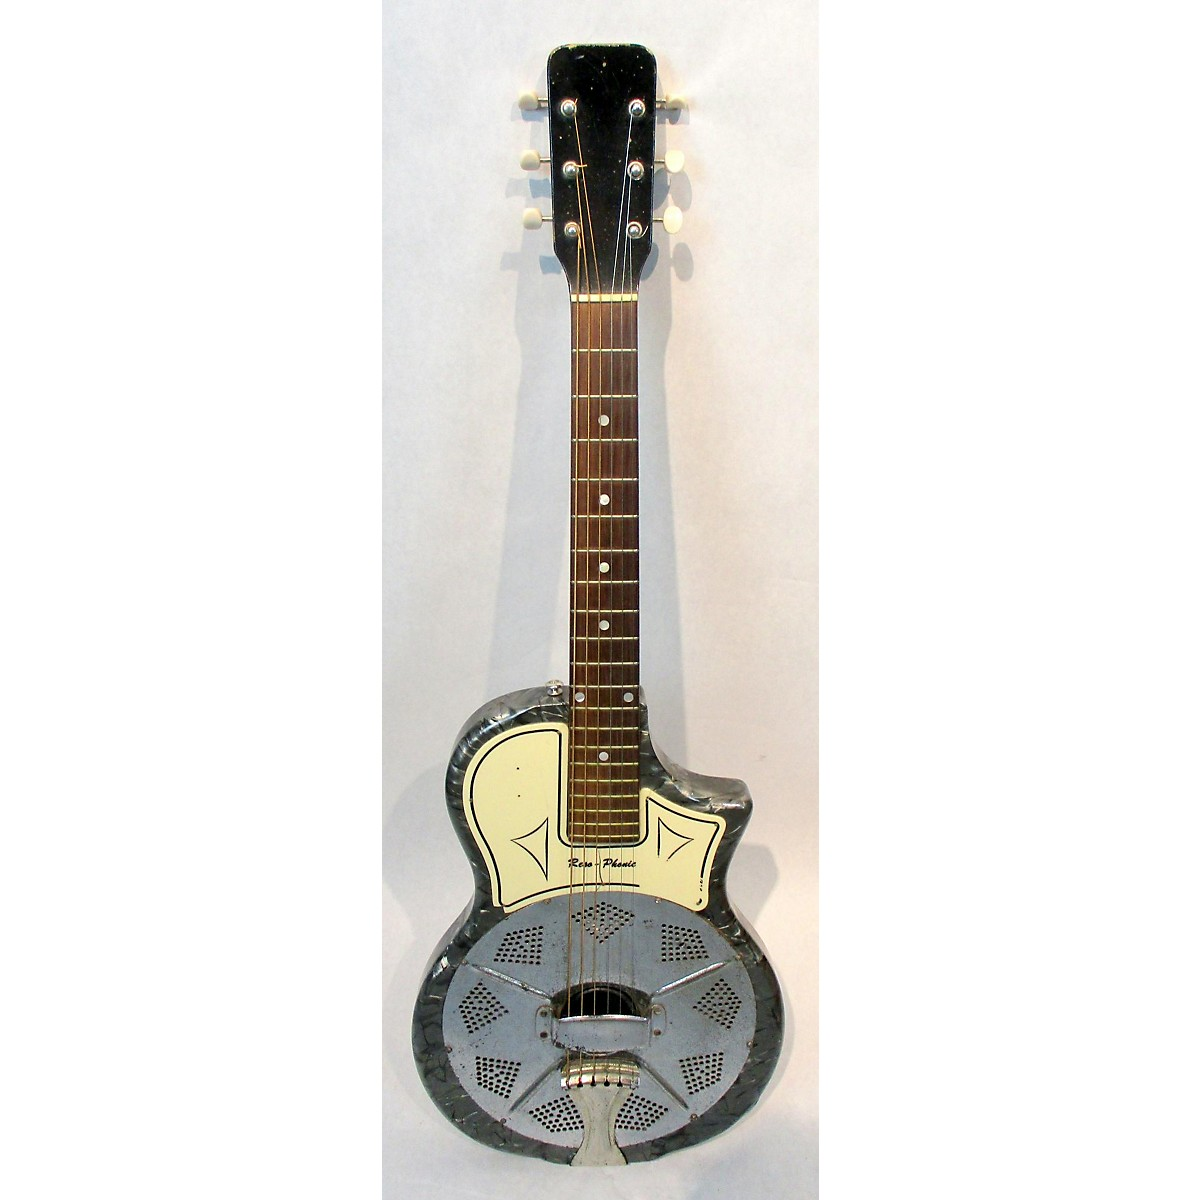 National 1964 Reso-phonic Acoustic Electric Guitar